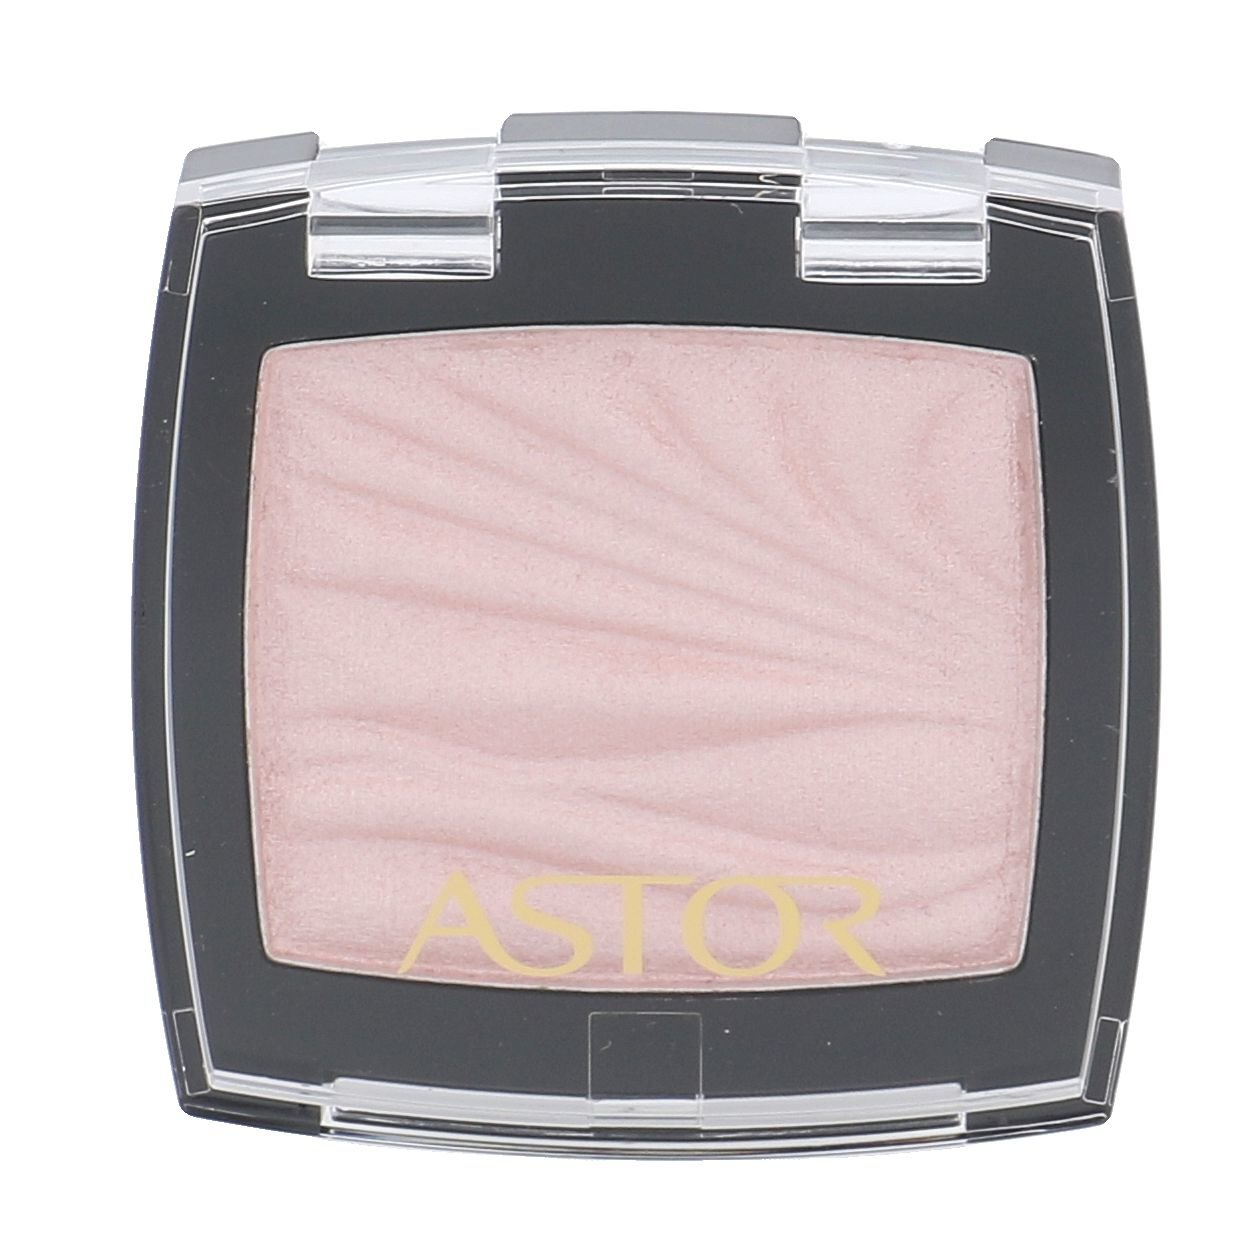 ASTOR Eye Artist Cosmetic 4ml 600 Delicate Pink